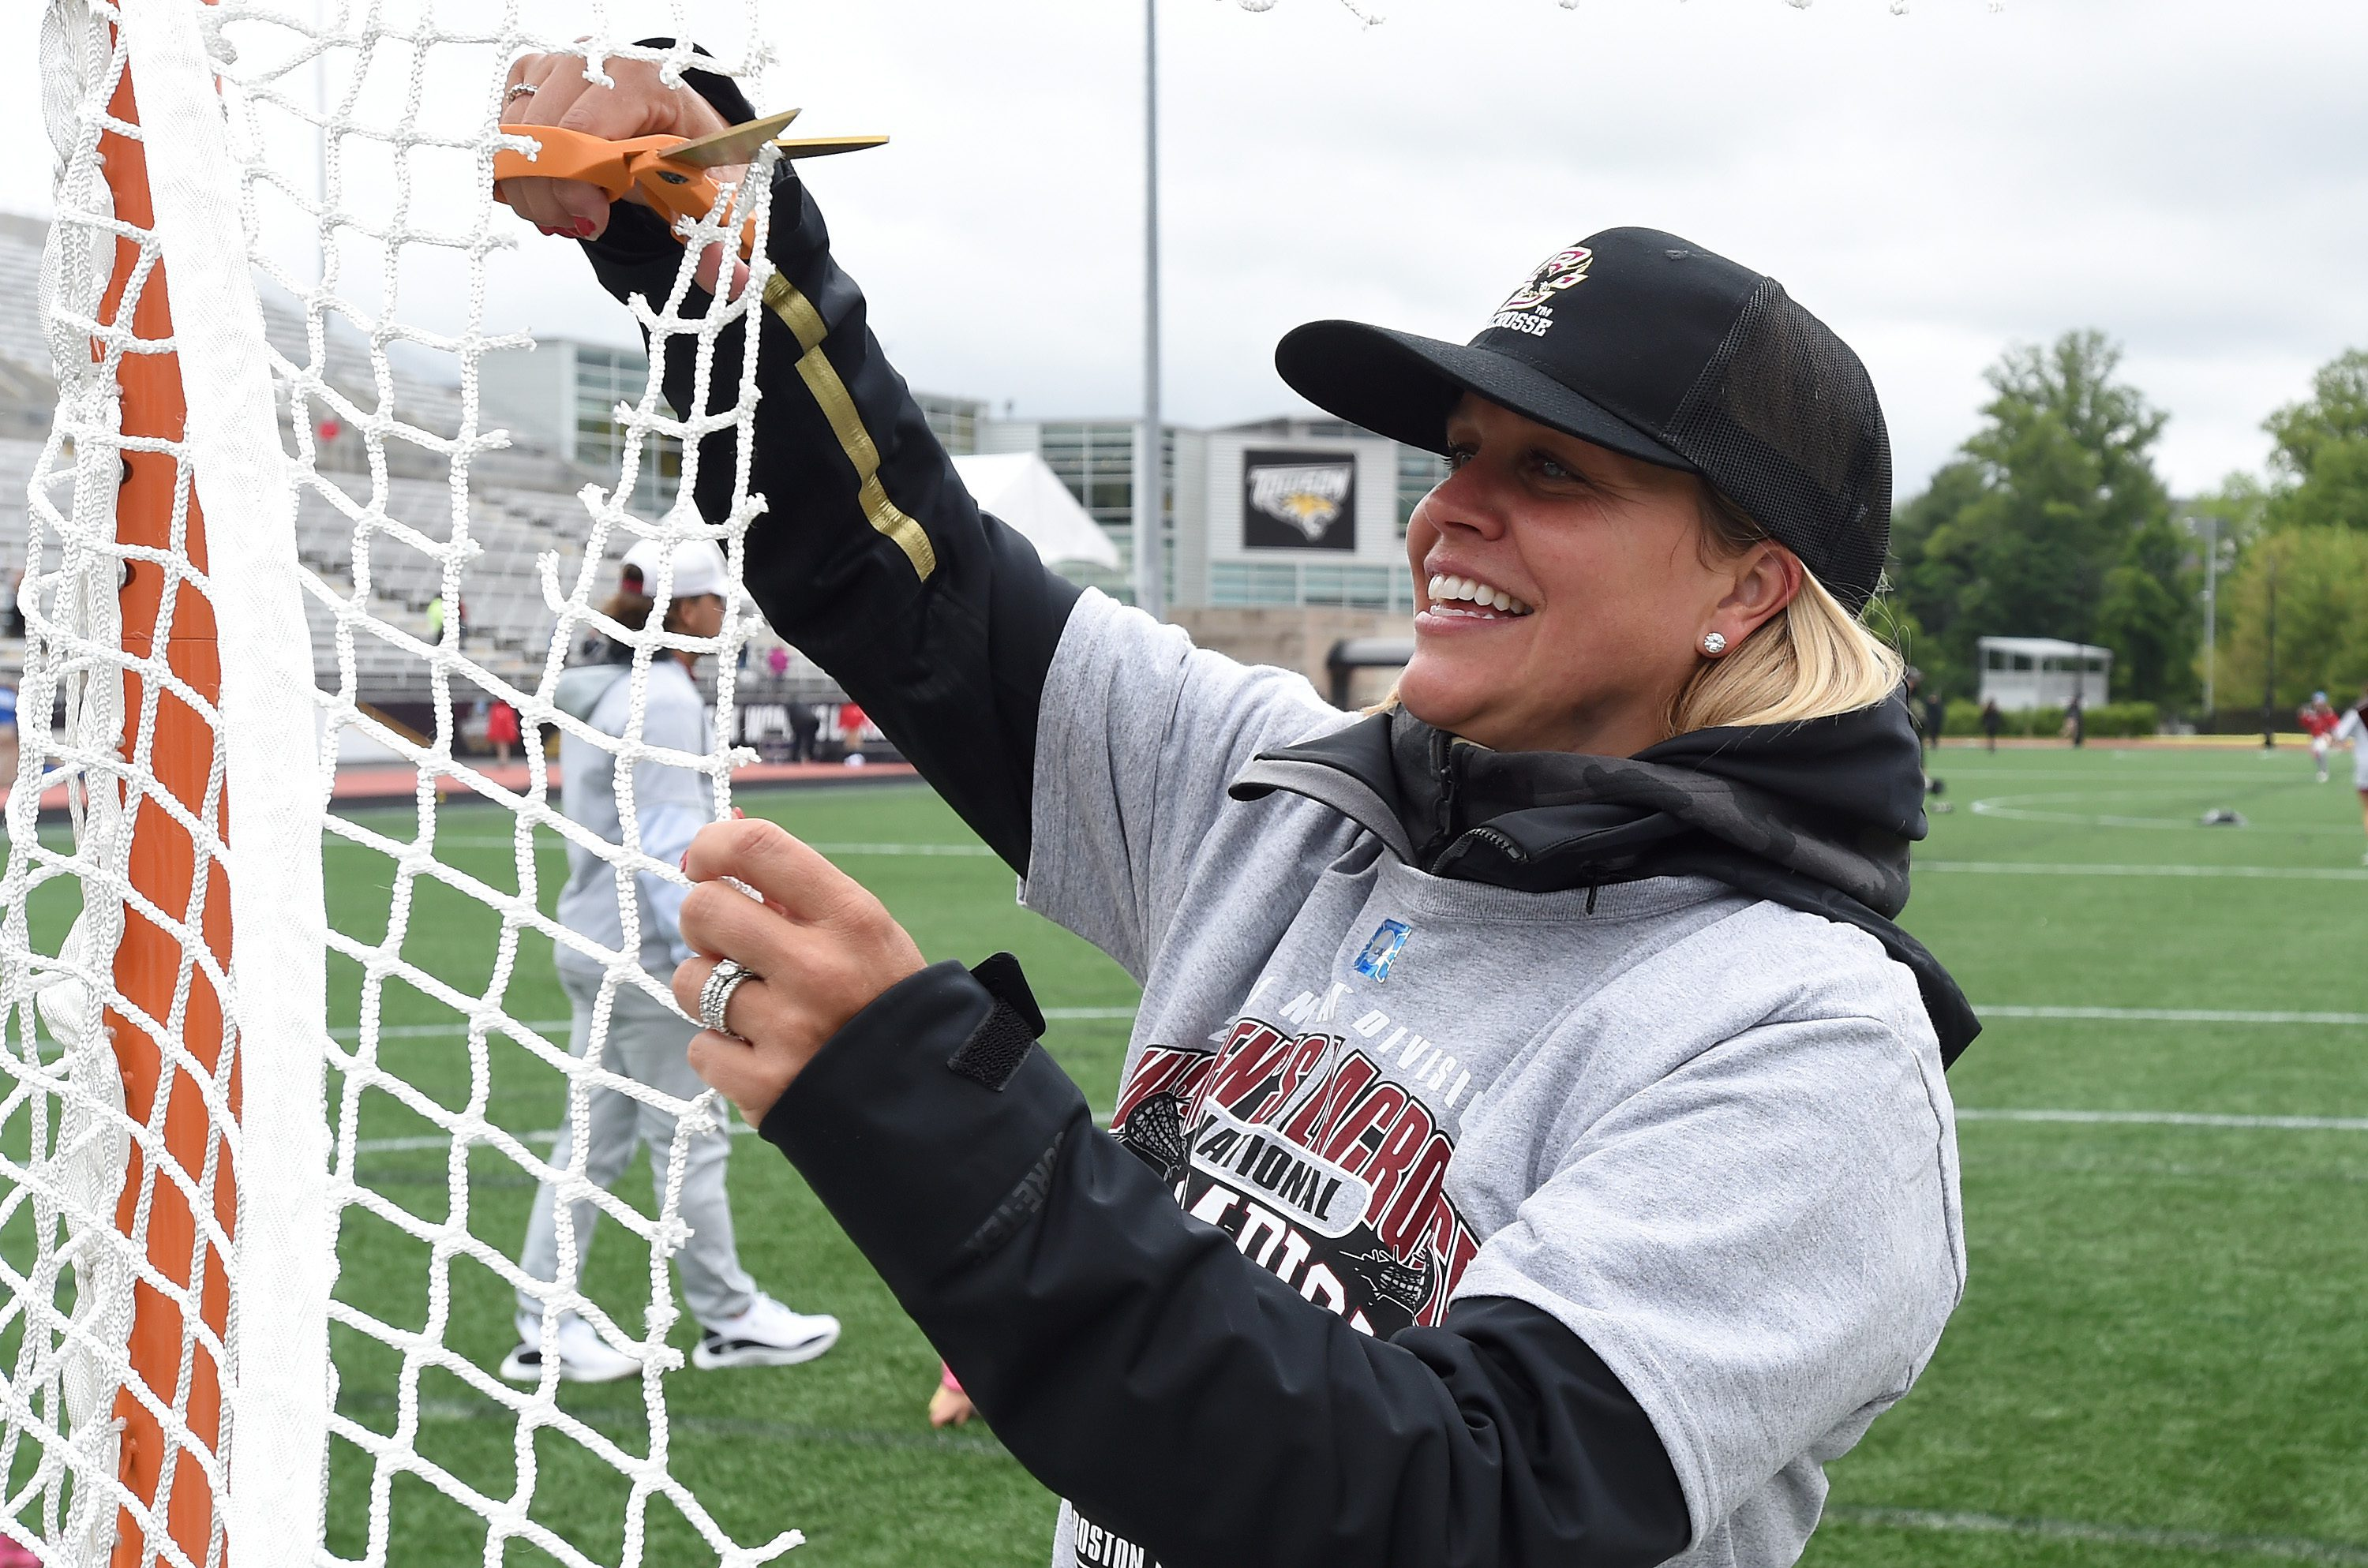 Boston College Head Coach - Acacia Walker-Weinstein cuts lacrosse goal net with scissors after winning 2021 NCAA Women's Lacrosse Championship with a big smile, BC Lacrosse hat and National Championship shirt © Equity IX - SportsOgram - Leigh Ernst Friestedt